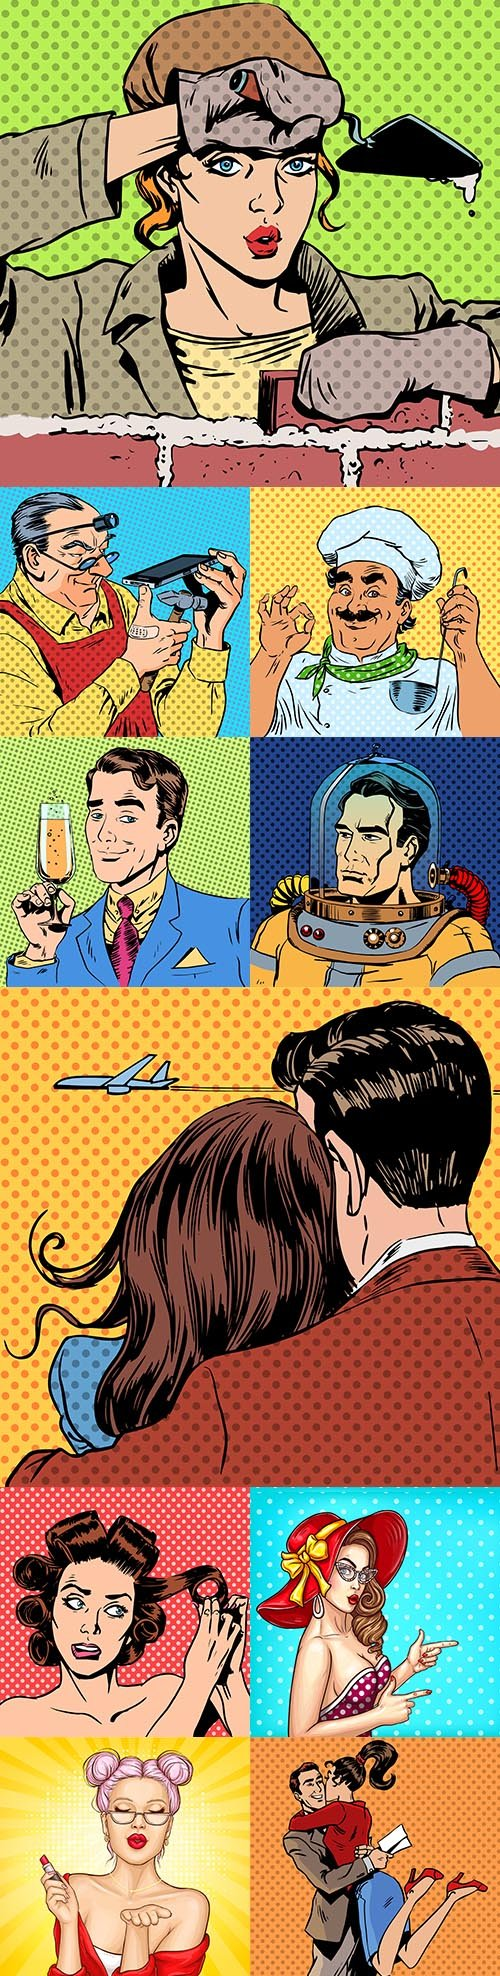 Man and woman comic illustrations in pop art style